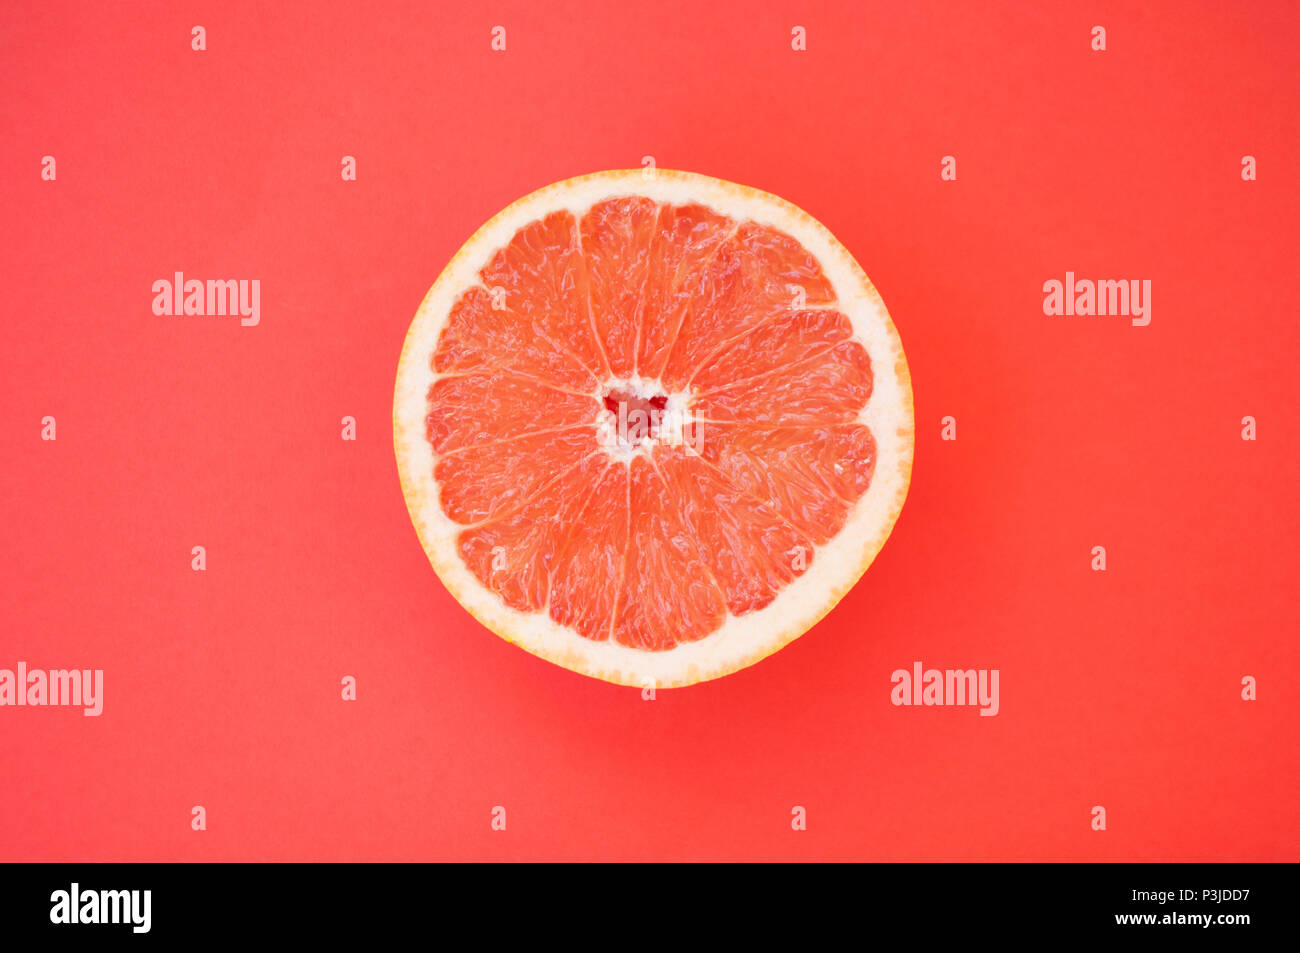 Beautiful juicy cut grapefruit on red background. - Stock Image